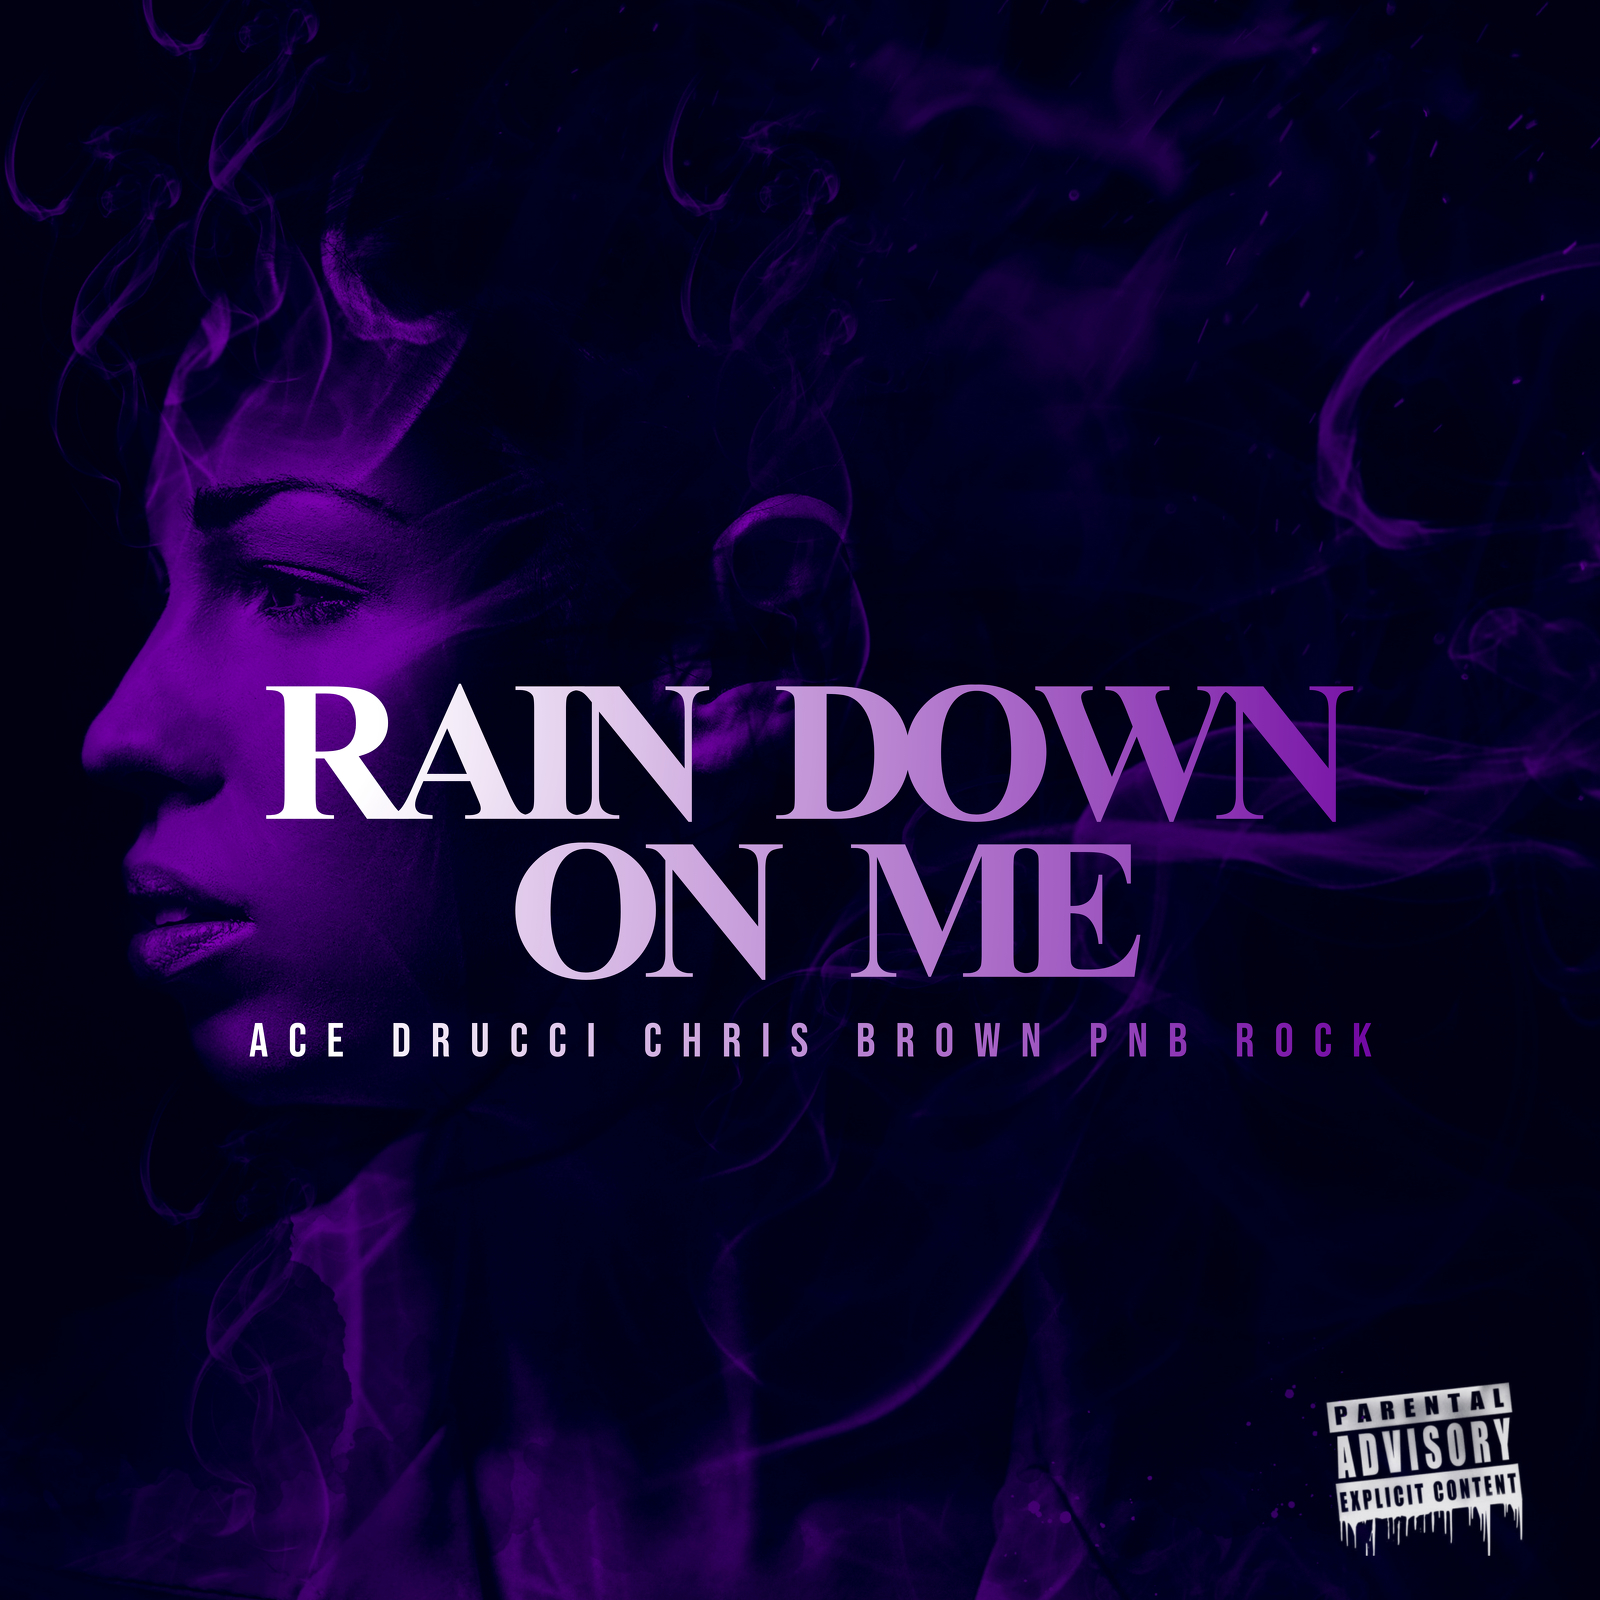 Artist/Producer Ace Drucci Releases New Single 'Rain Down On Me' With Chris Brown and PnB Rock